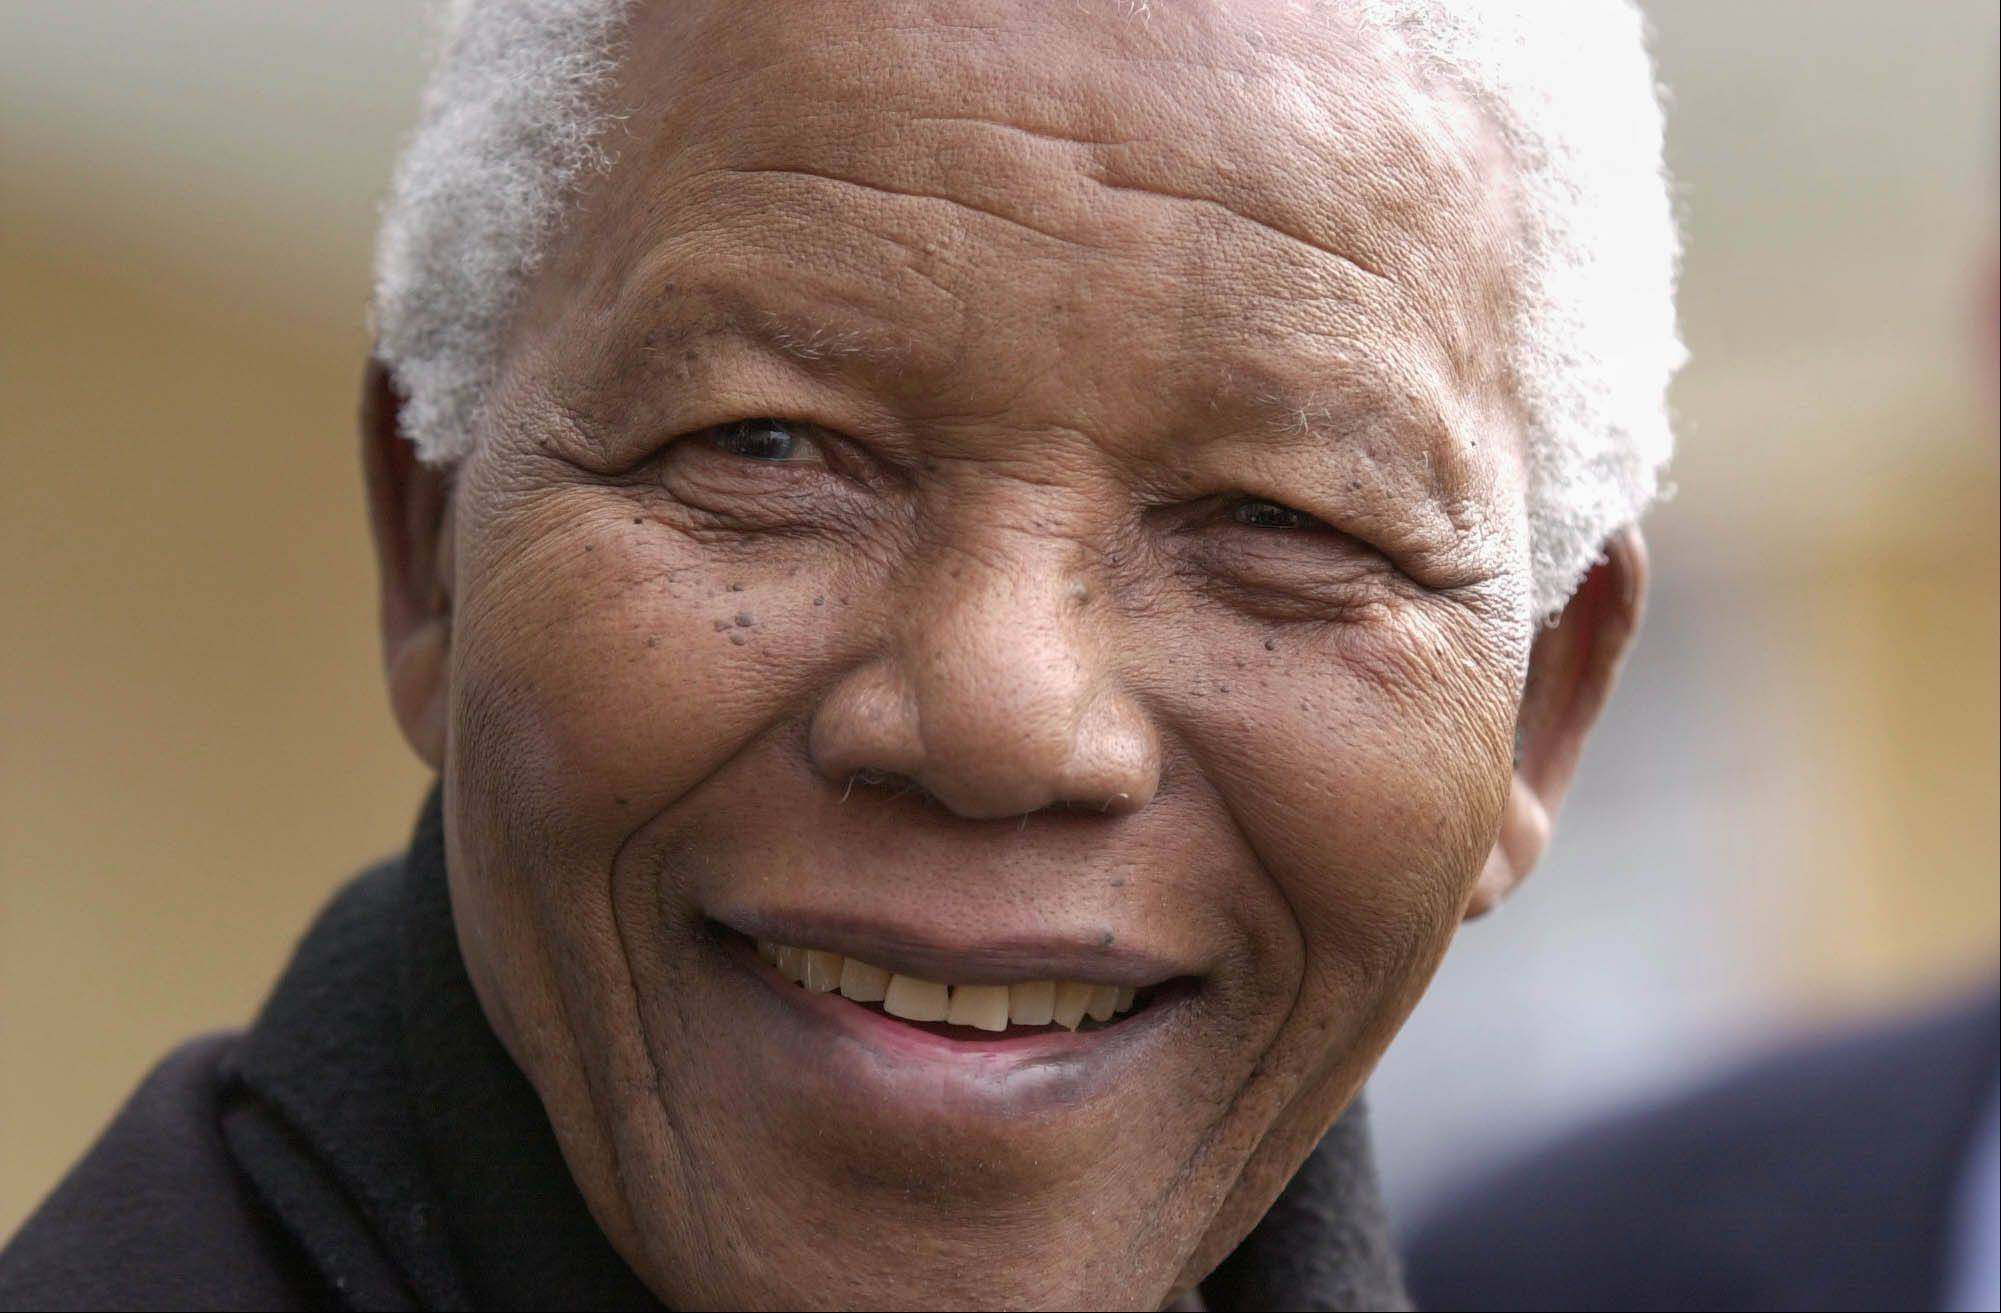 @$ID/[No paragraph style]: Nelson Mandela